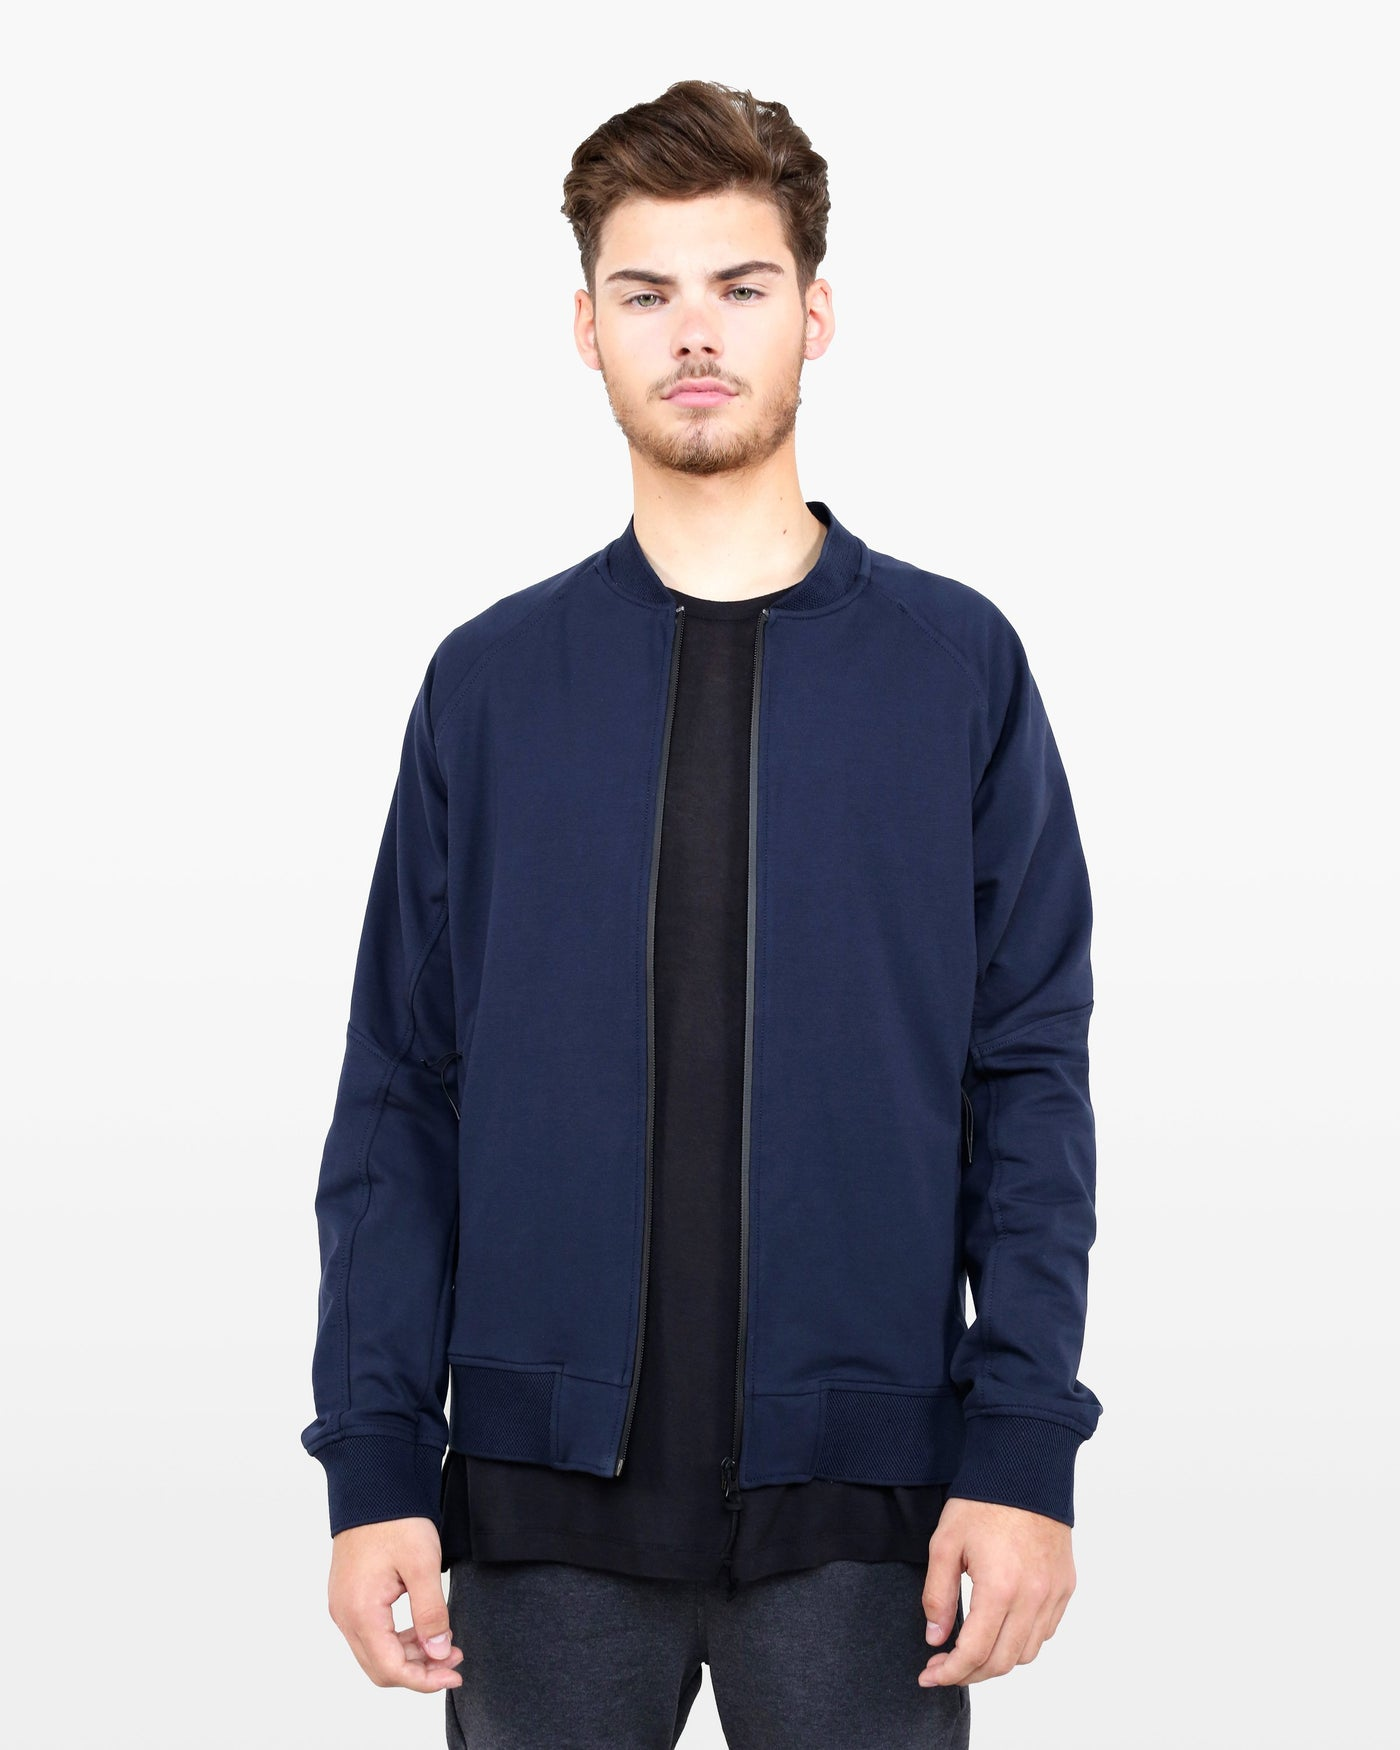 Curie Jacket DTT in marine